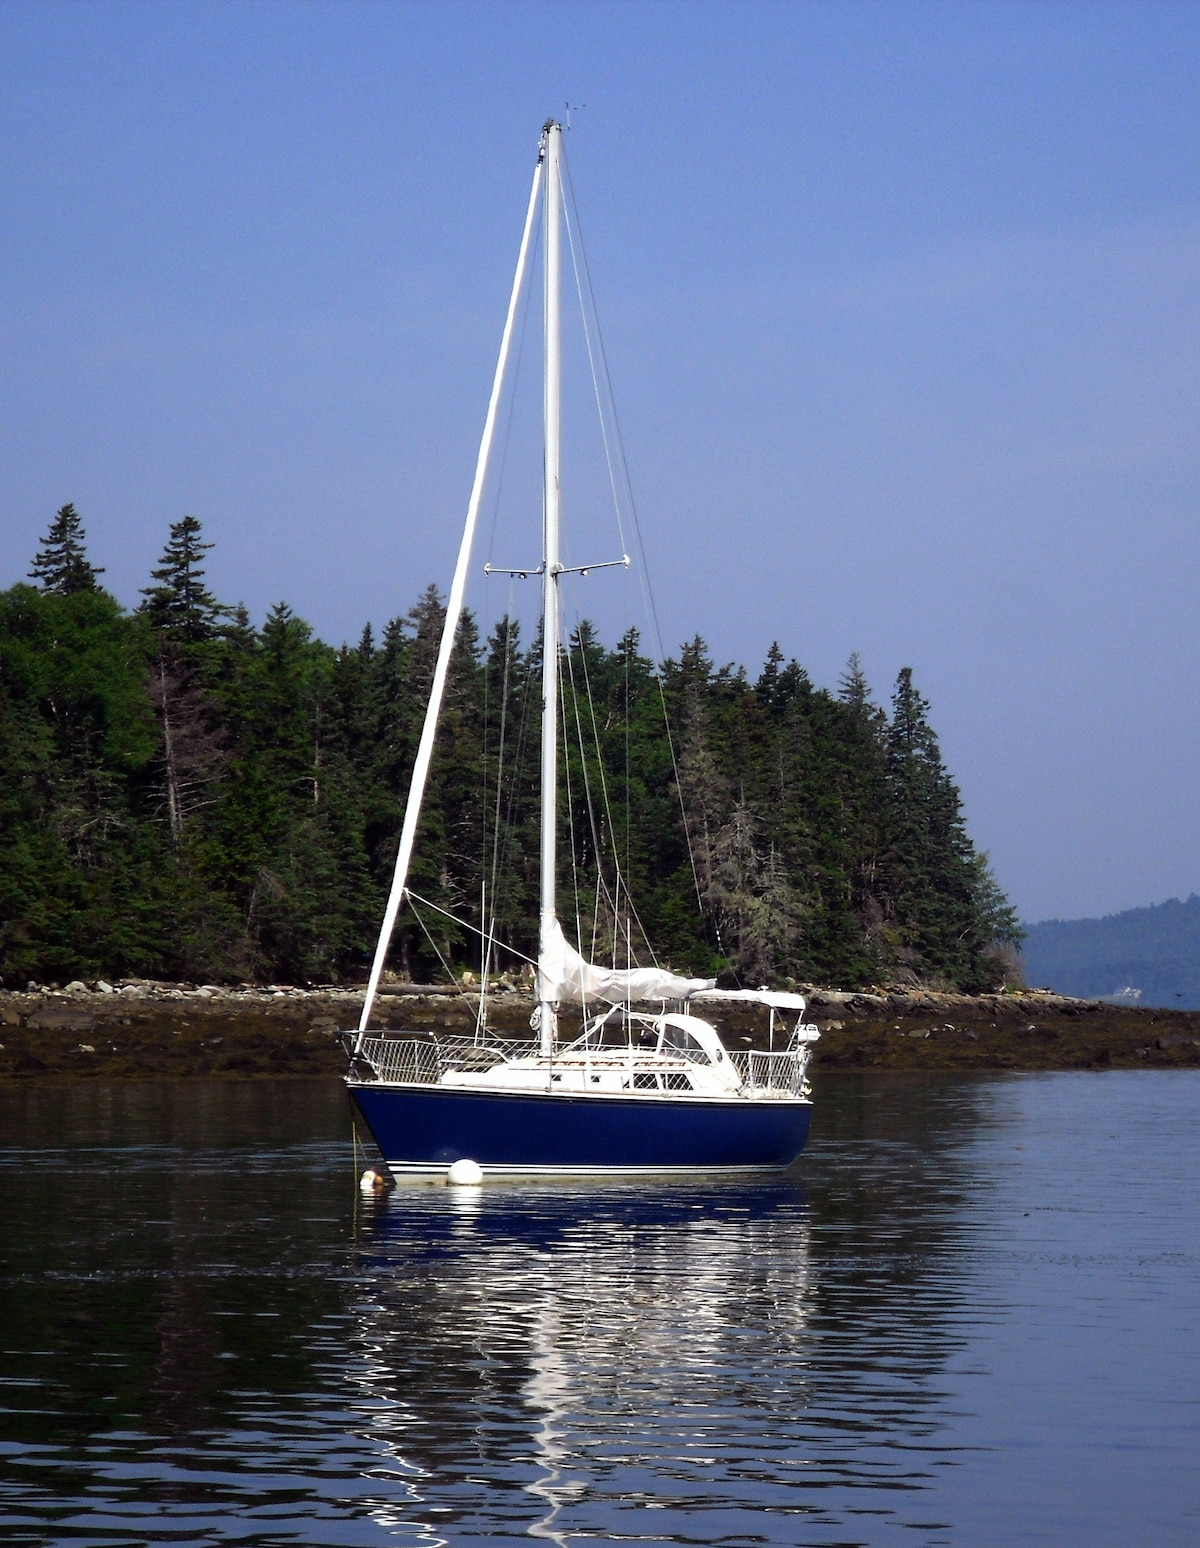 O'HD moored off Holbrook Island Sanctuary, near Castine Harbor